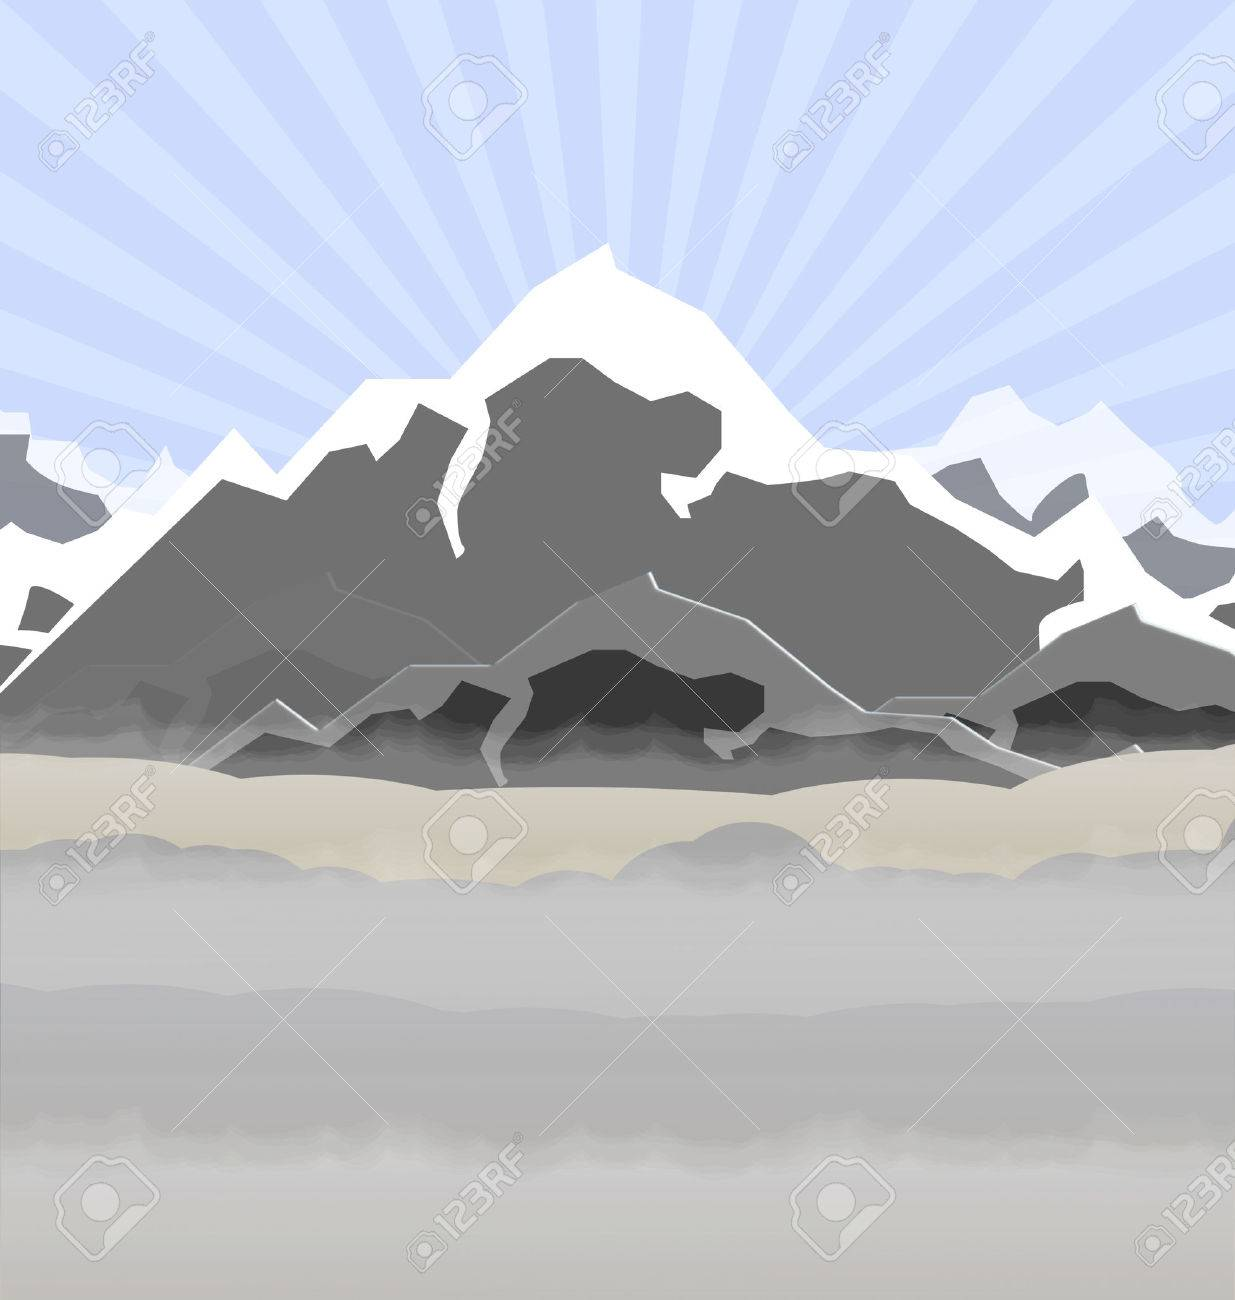 illustration of high mountains in fog - 7175877